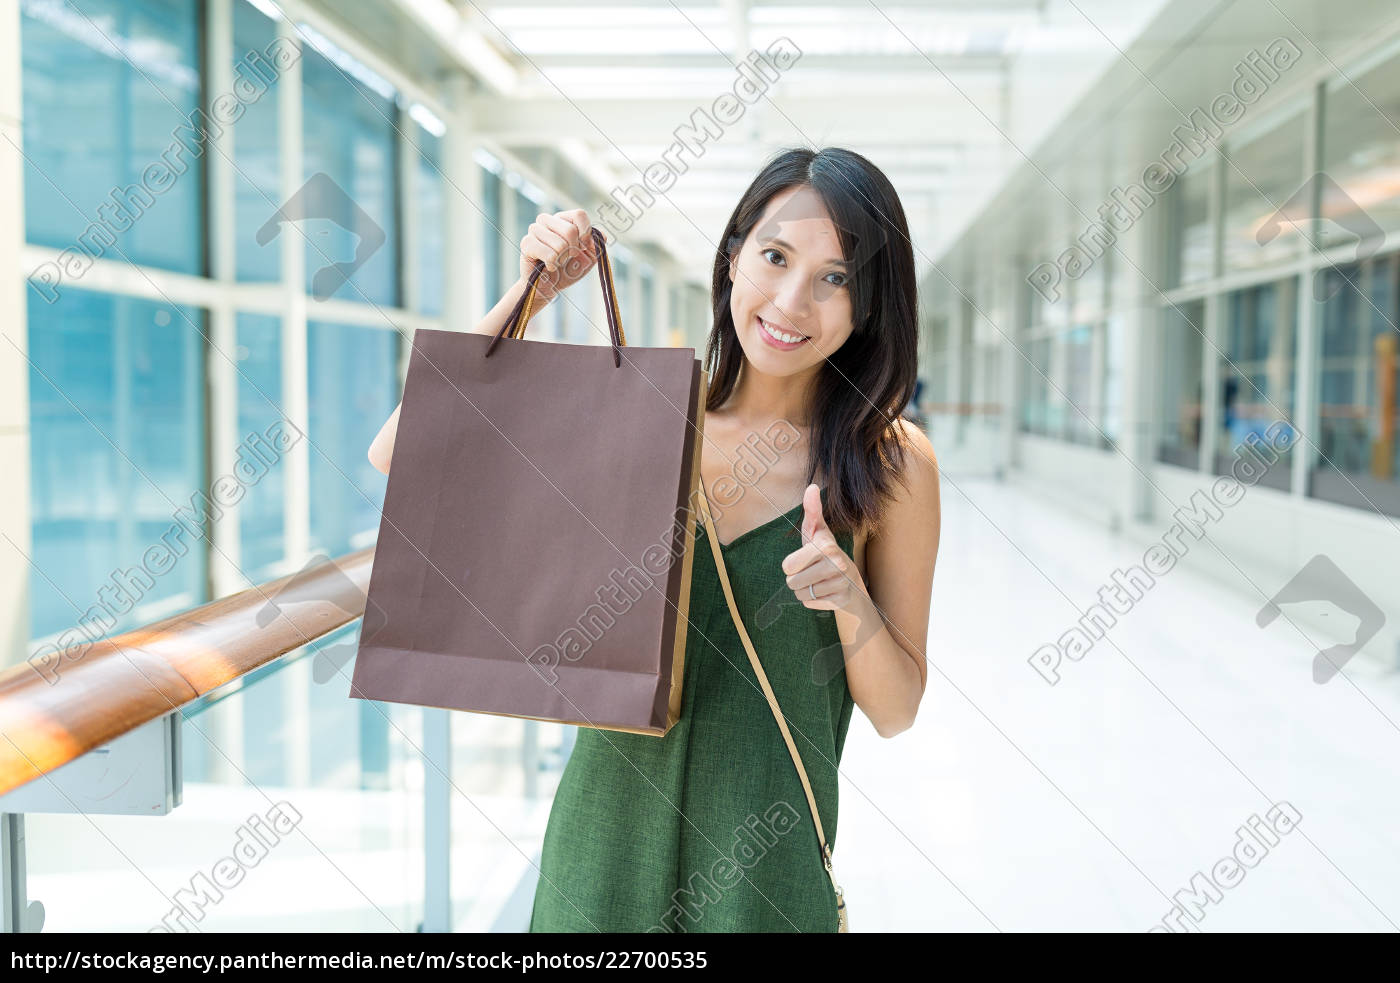 woman, holding, shopping, bag, and, showing - 22700535